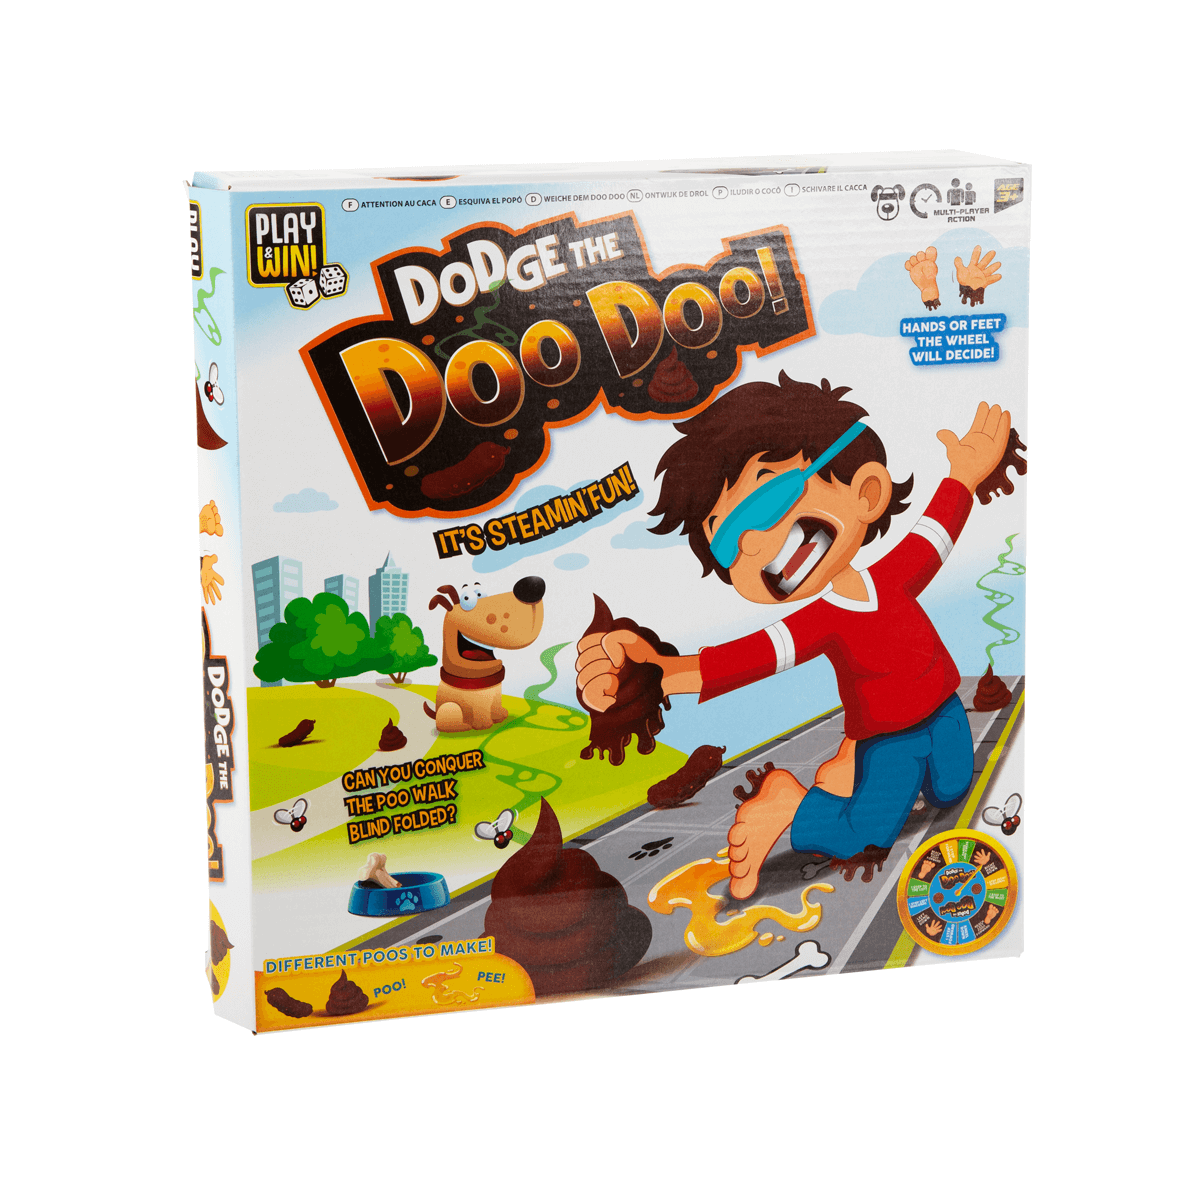 Play & Win Dodge The Doo Doo Game